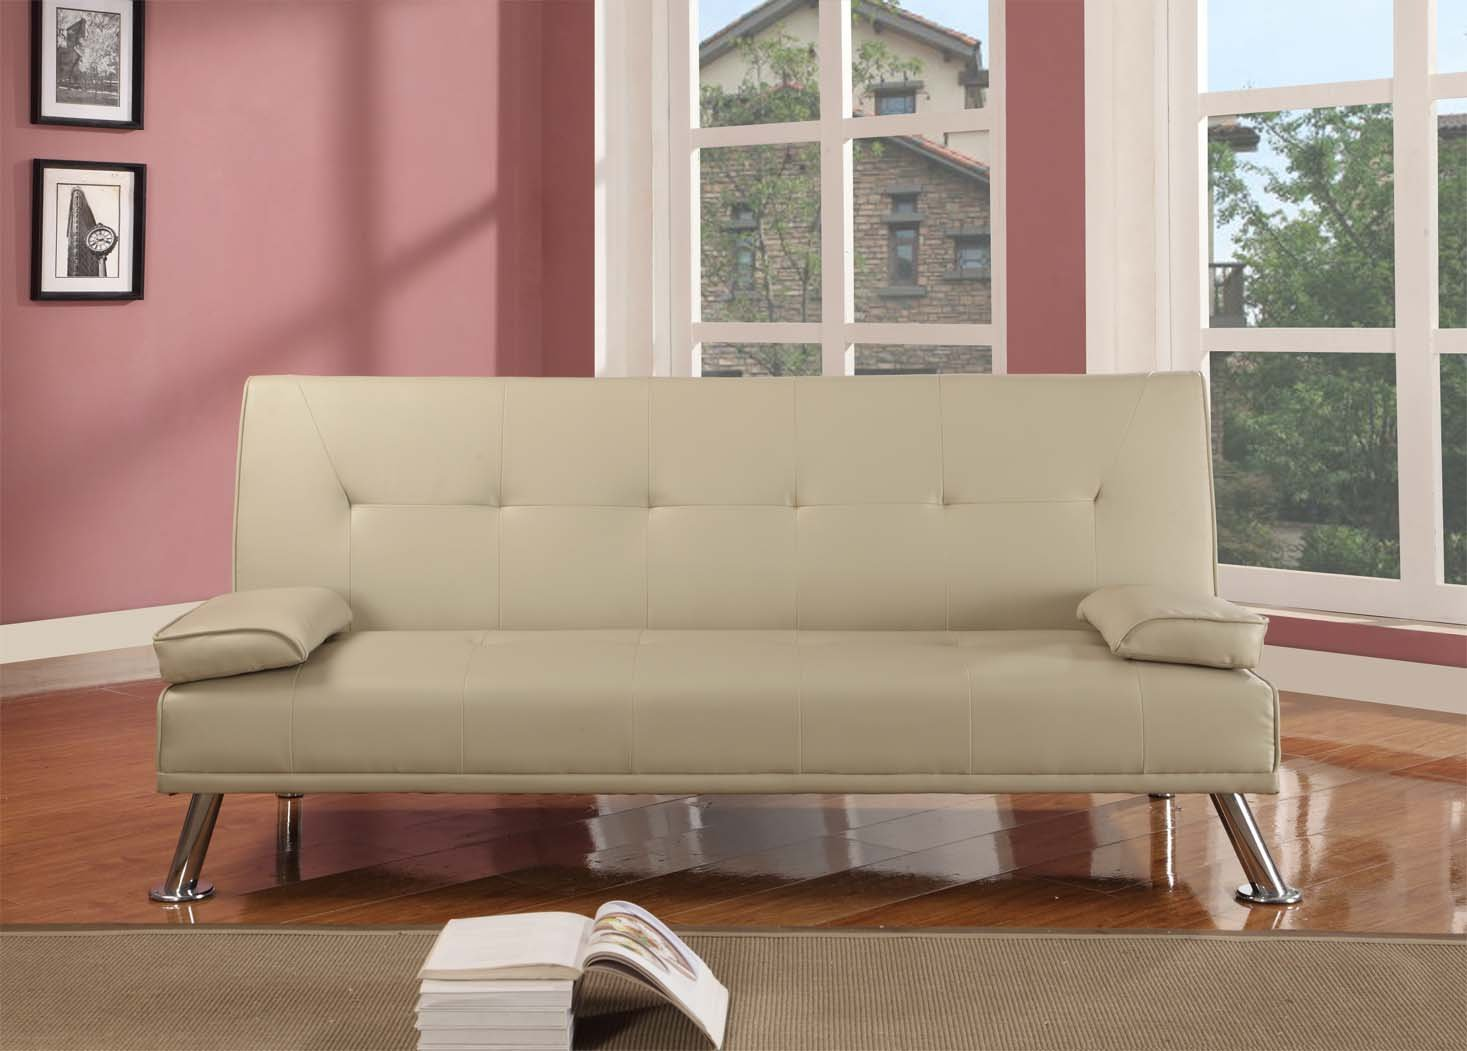 Comfy Living Large Stunning Italian Designer Faux Leather 3 Seater Sofa Bed Futon in CREAM